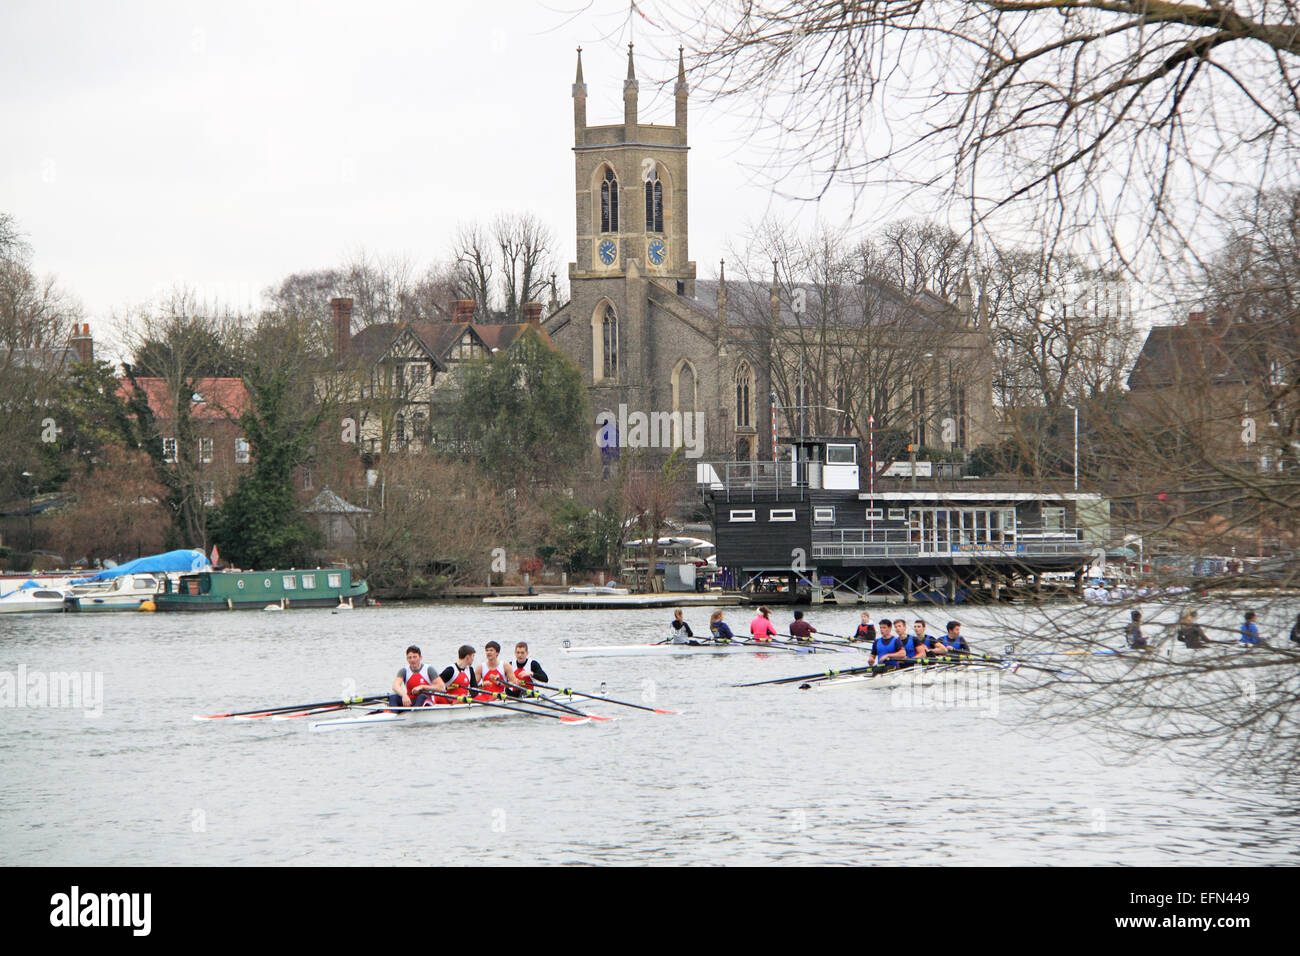 Radley College (nearest) and Tiffin School (blue) J18A.4x-. Hampton Head (Junior 4s and 8s) rowing event.  River - Stock Image